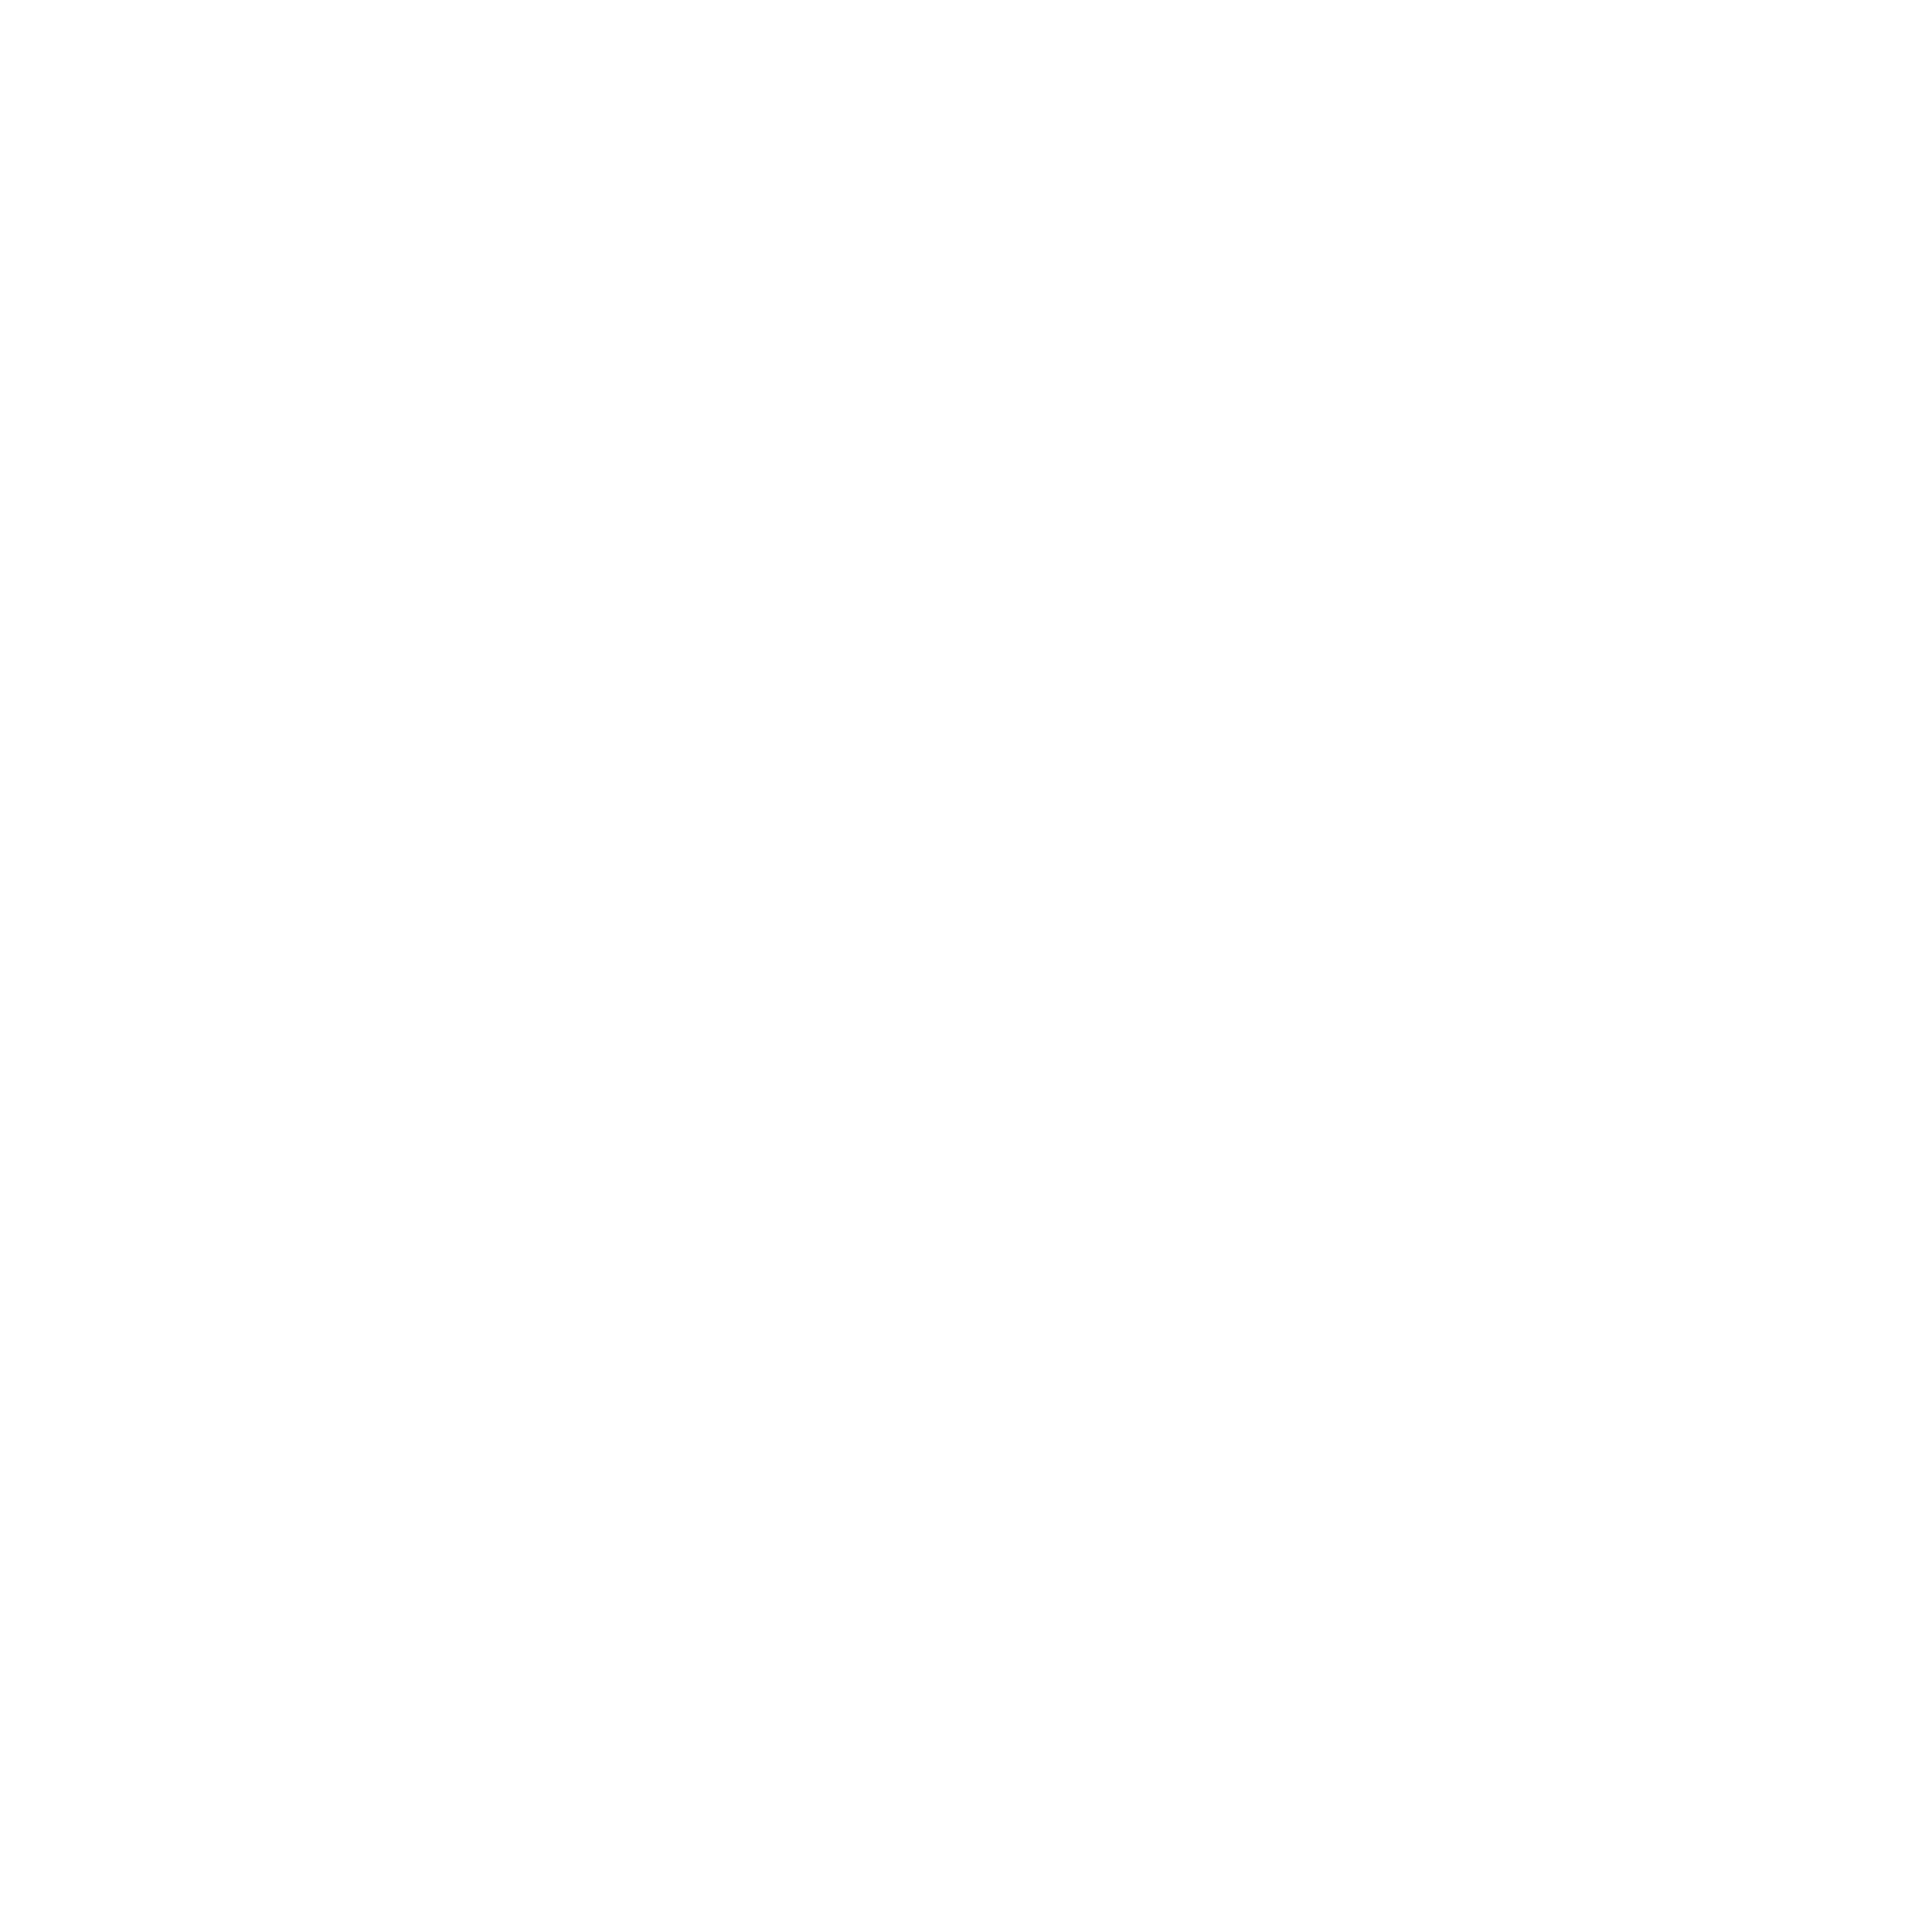 F.Y.I. - Ase Certified Logo PNG